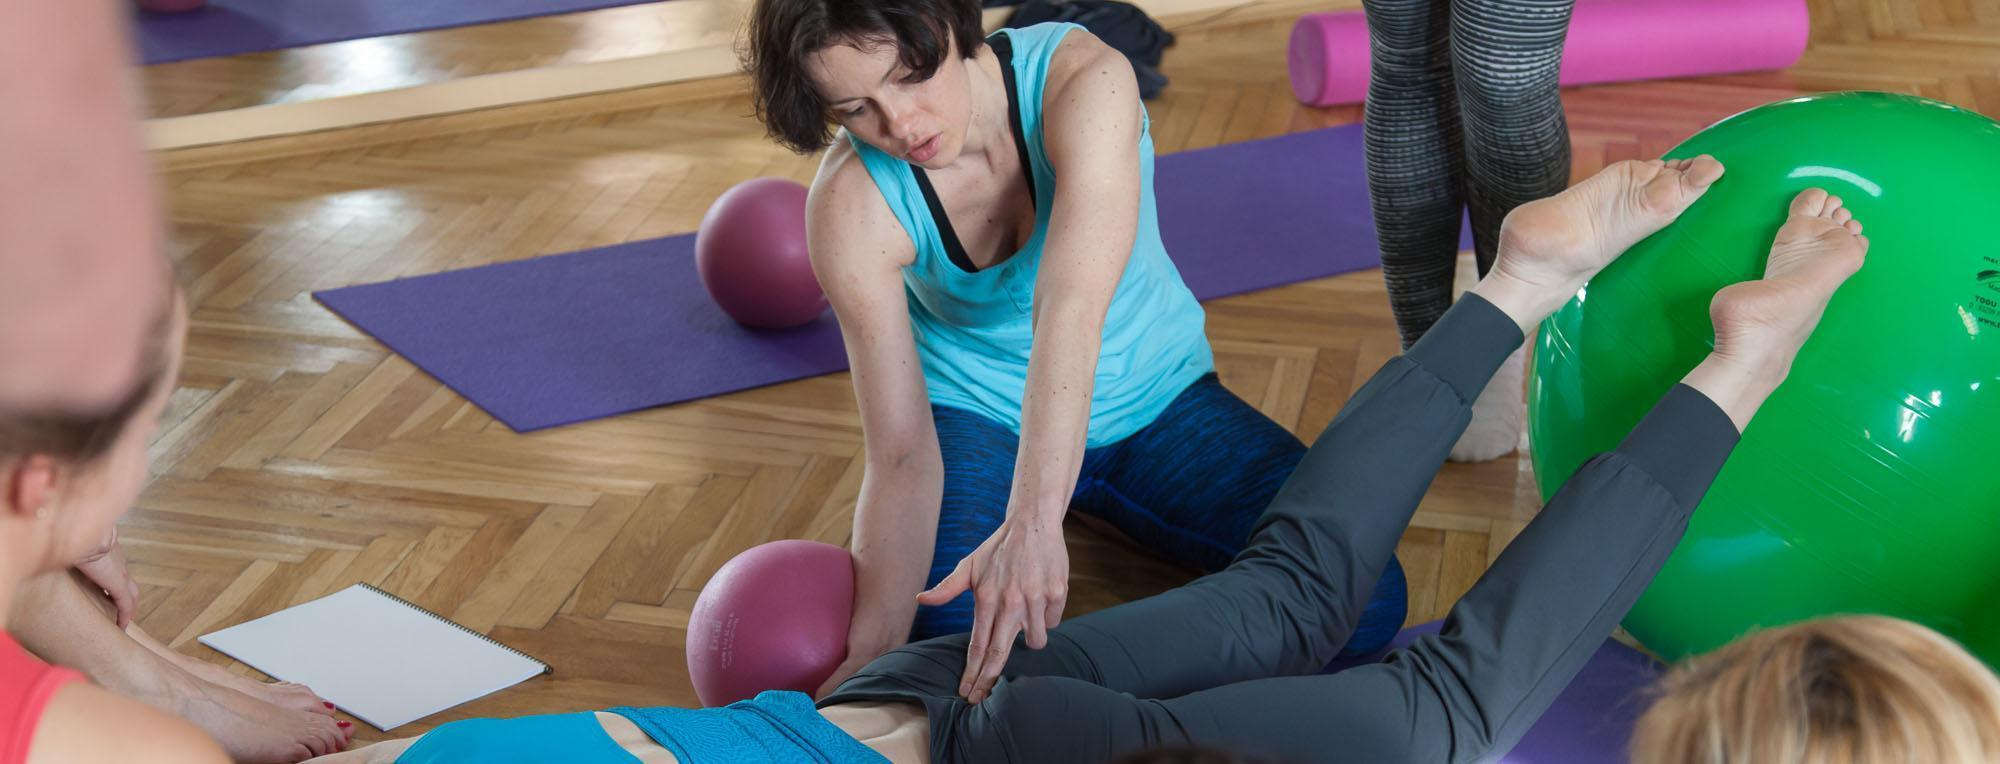 Kurs Pilates II One to One